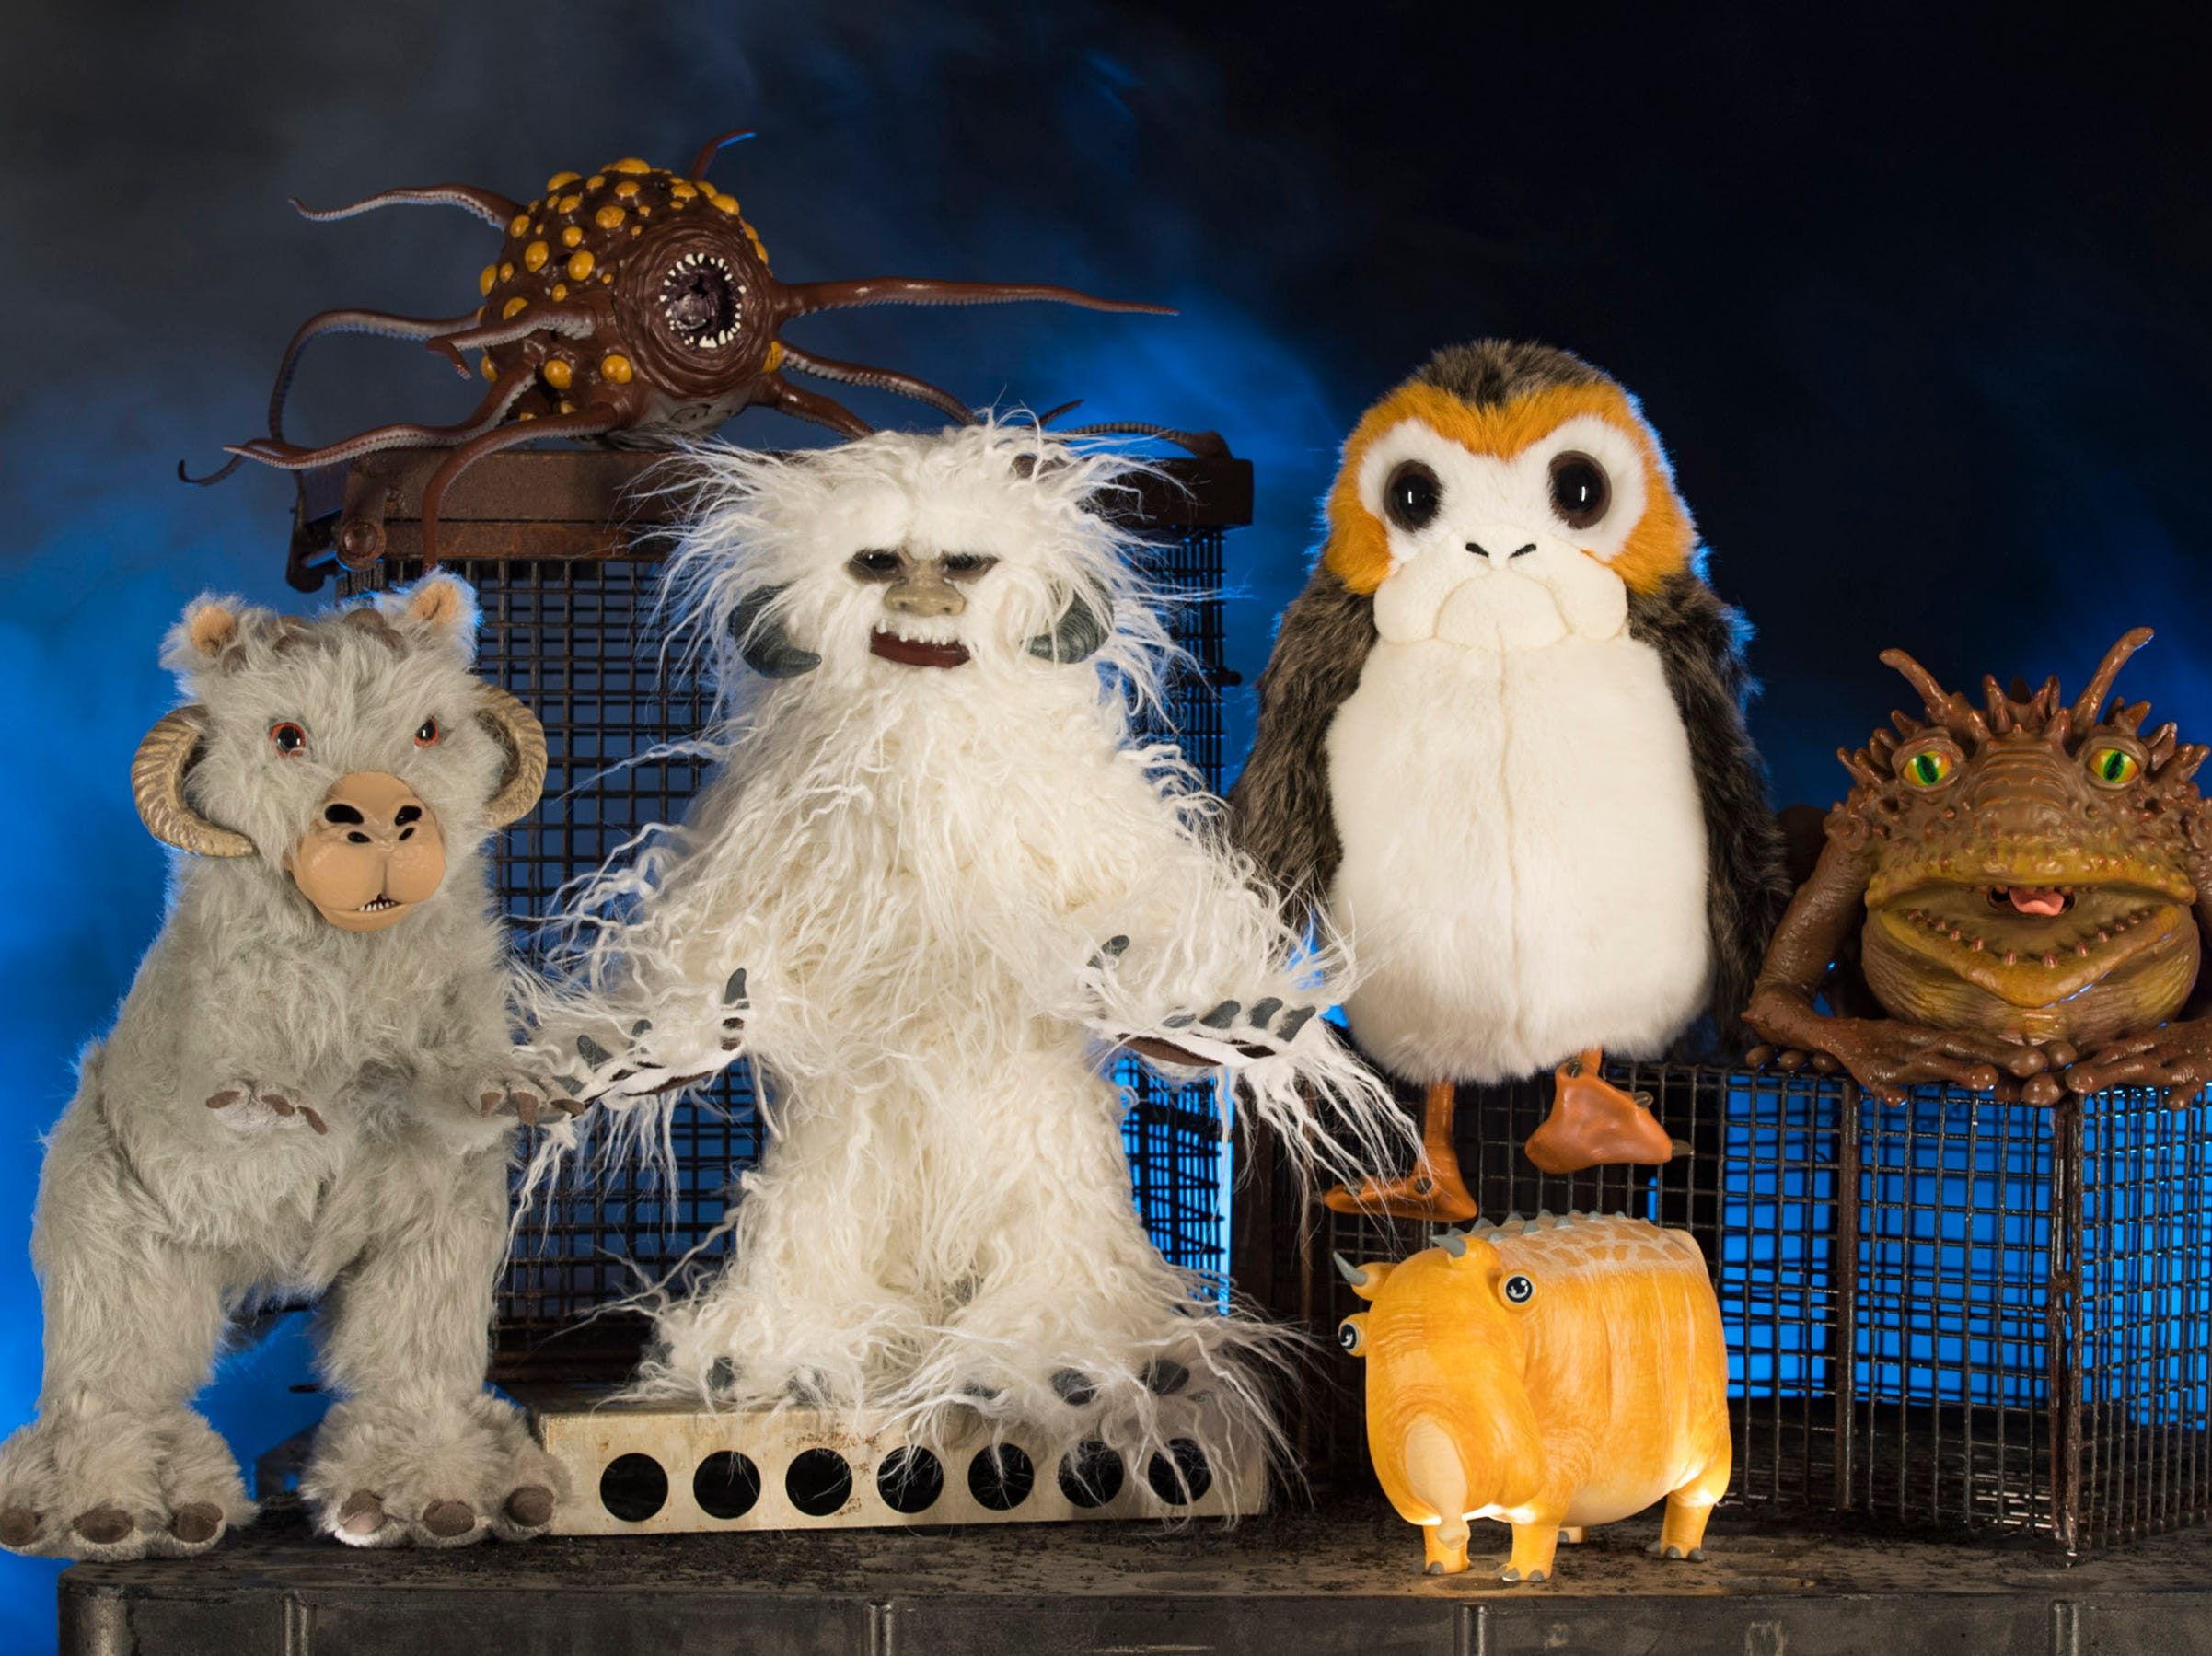 The Creature Stall in Star Wars: Galaxy's Edge will offer creatures of the galaxy, including porgs, tauntauns and more.